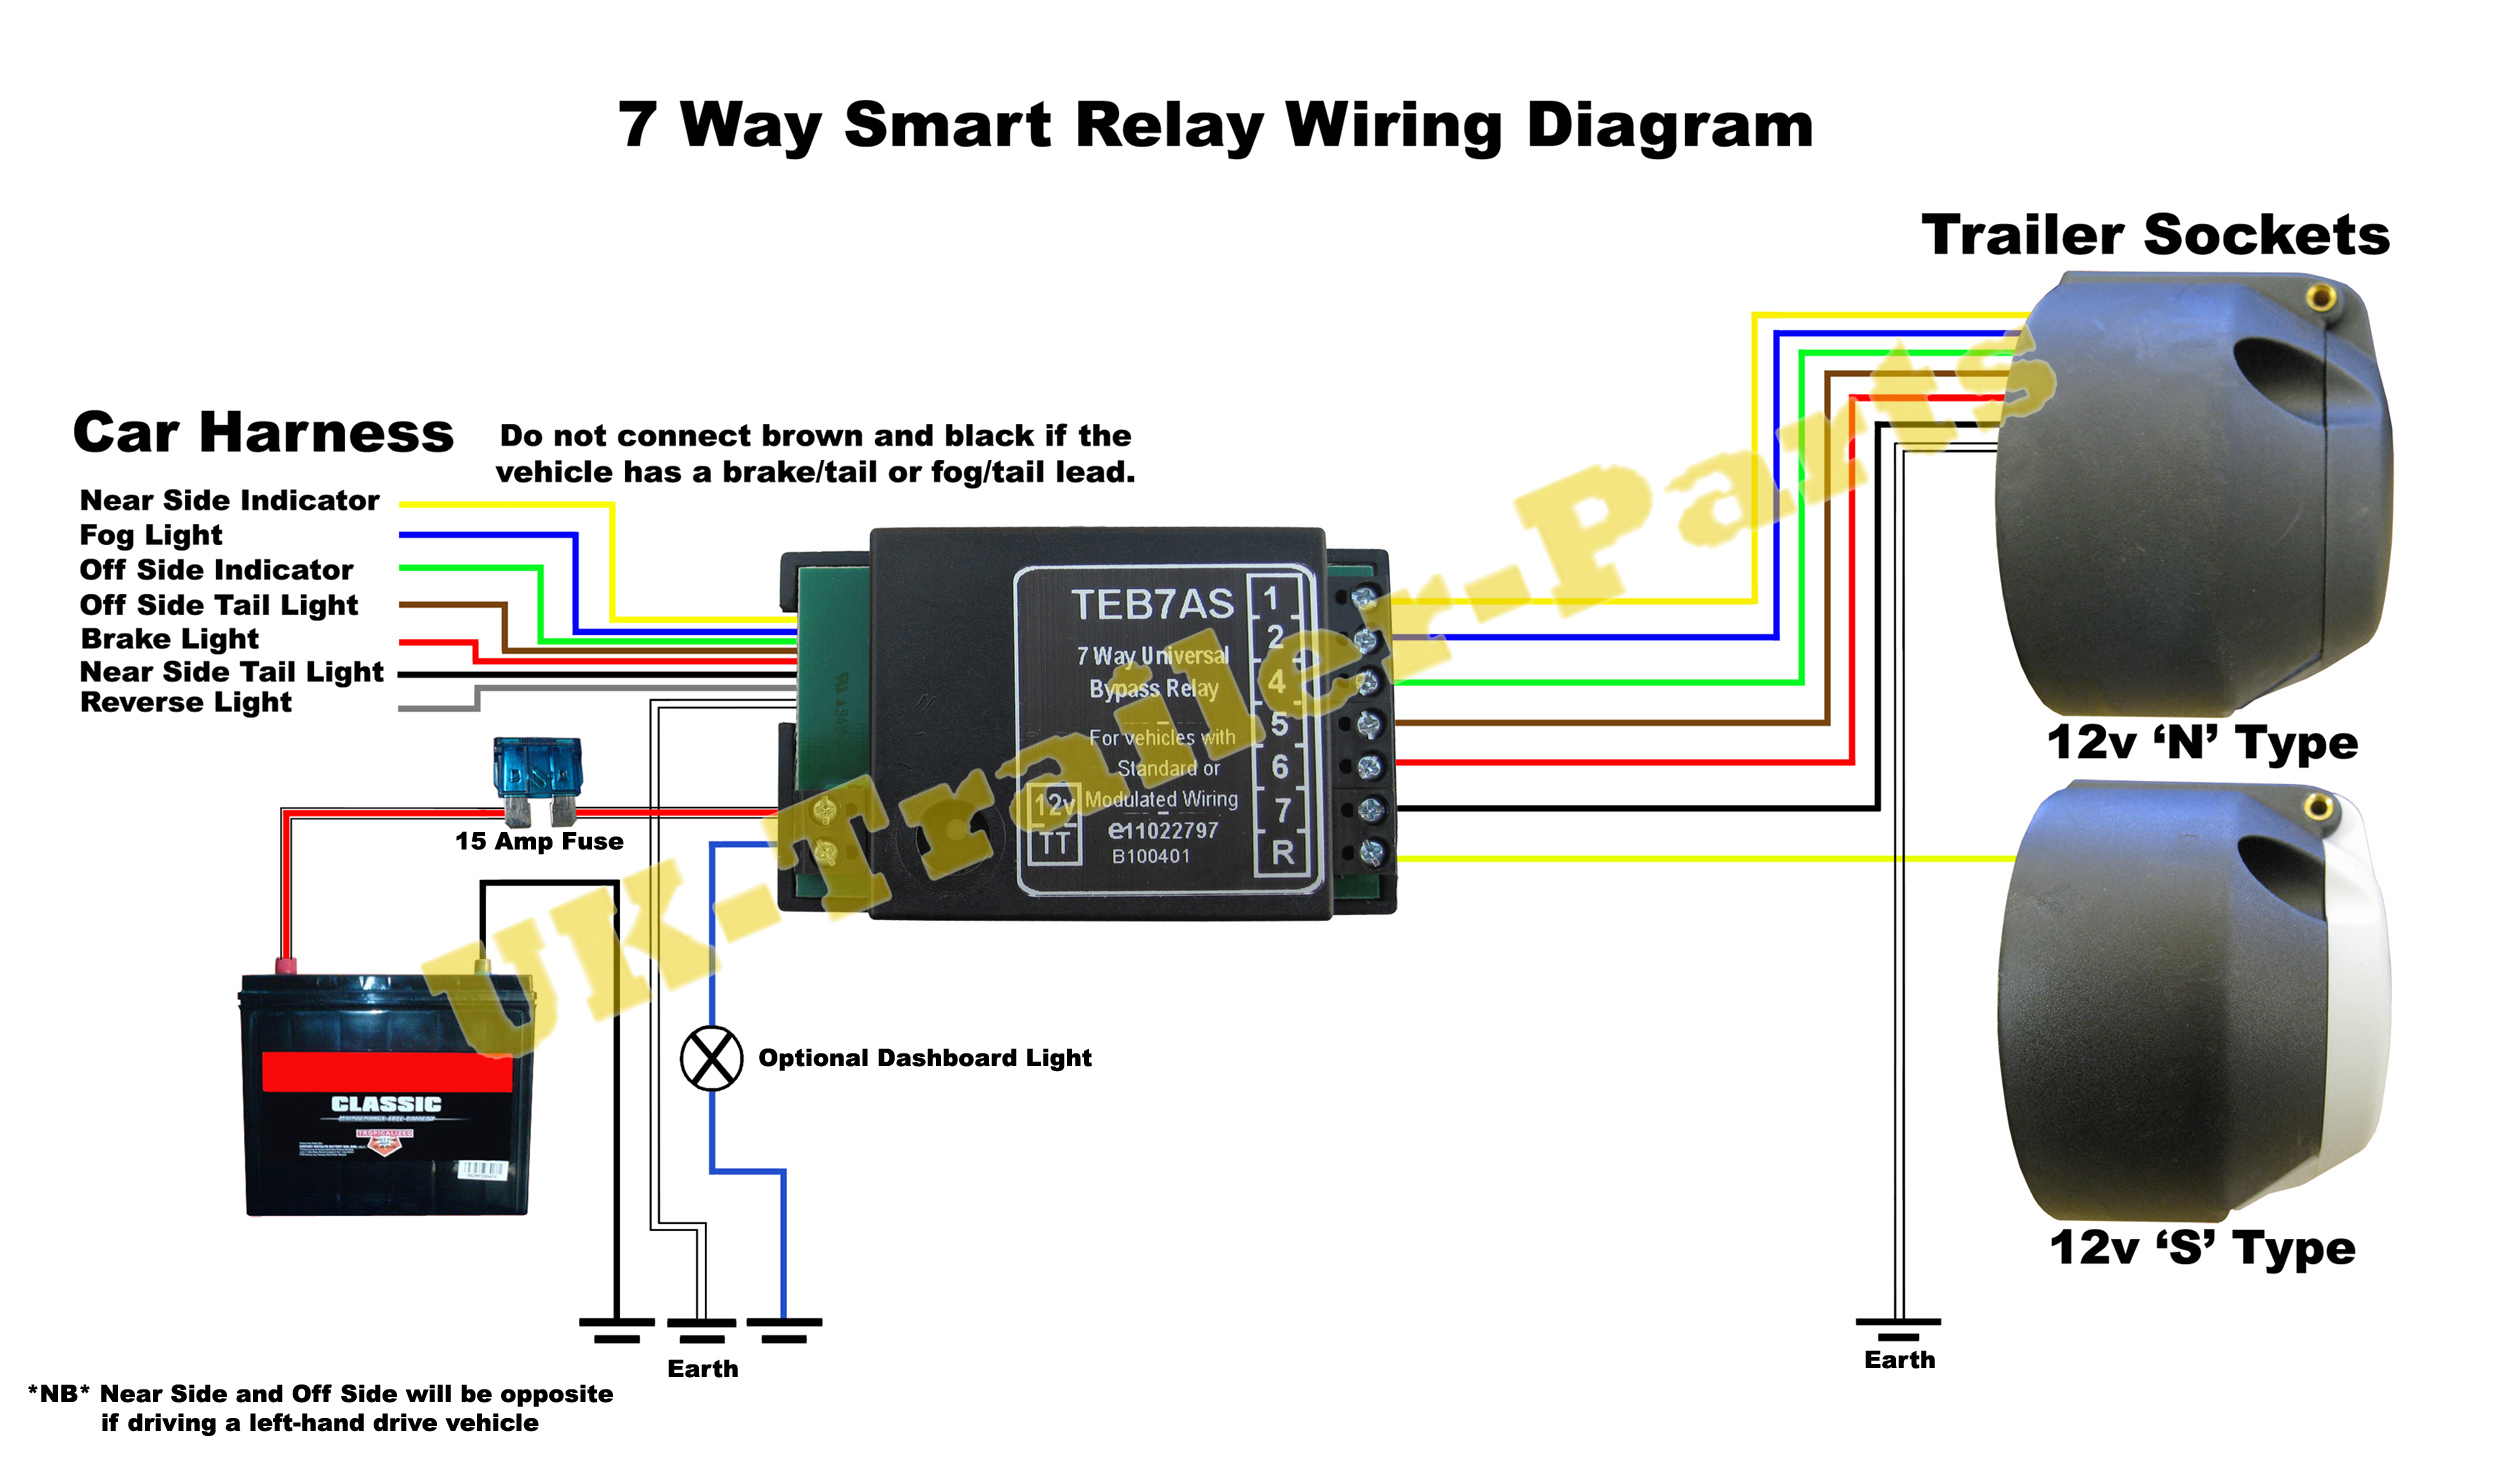 smart relay wiring diagram2 7 way universal bypass relay wiring diagram uk trailer parts car trailer wiring diagram with breakaway at alyssarenee.co